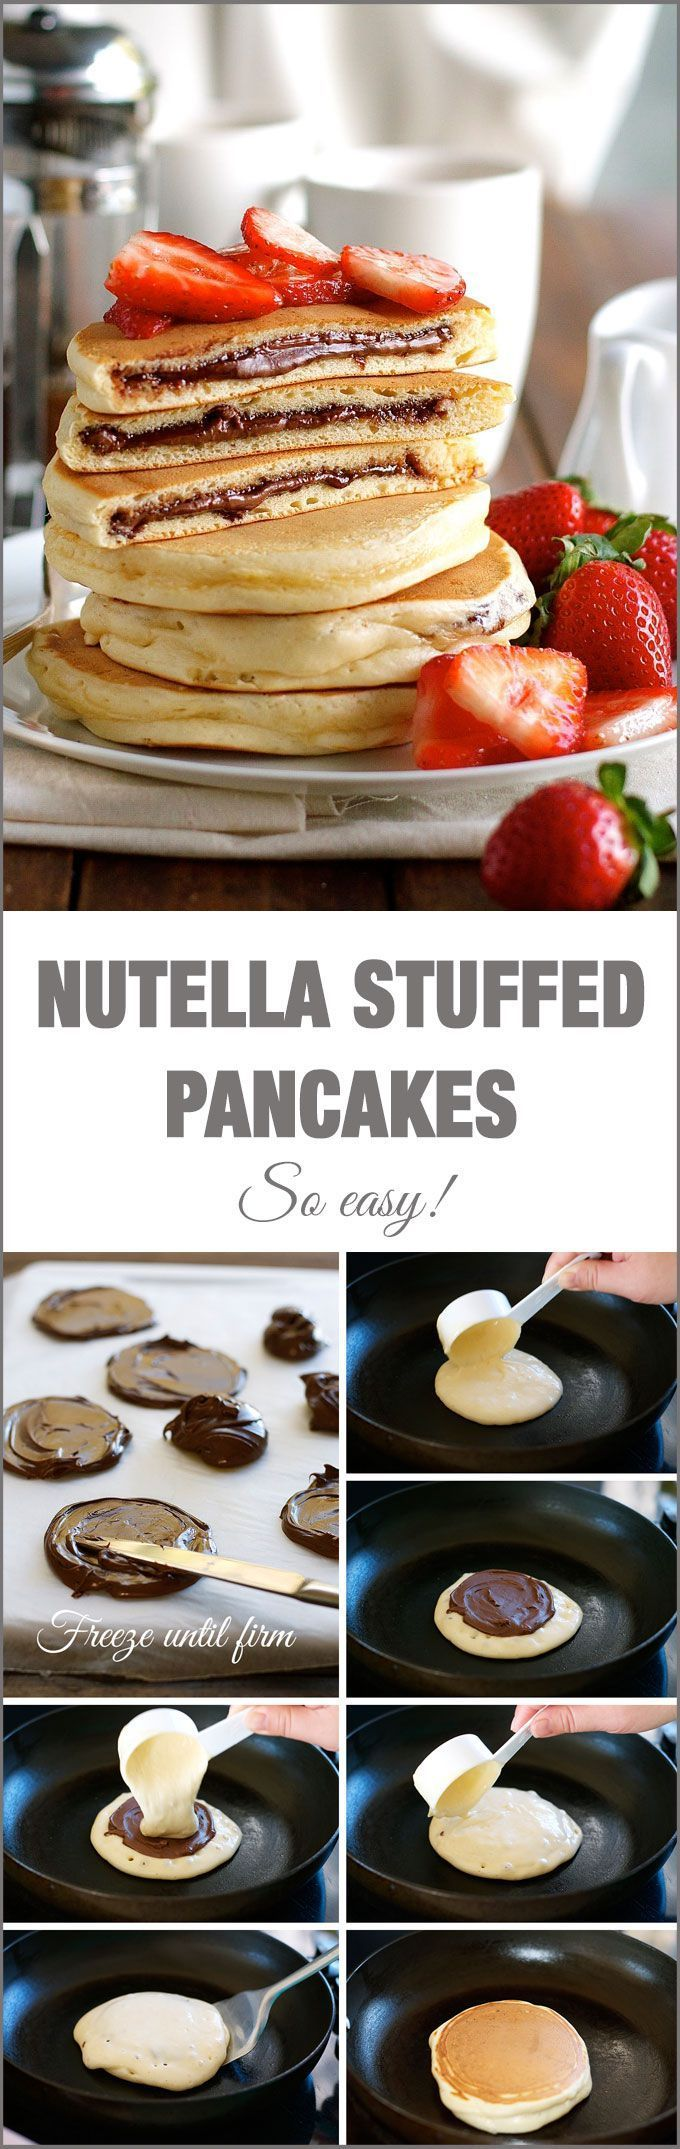 Nutella stuffed pancakes